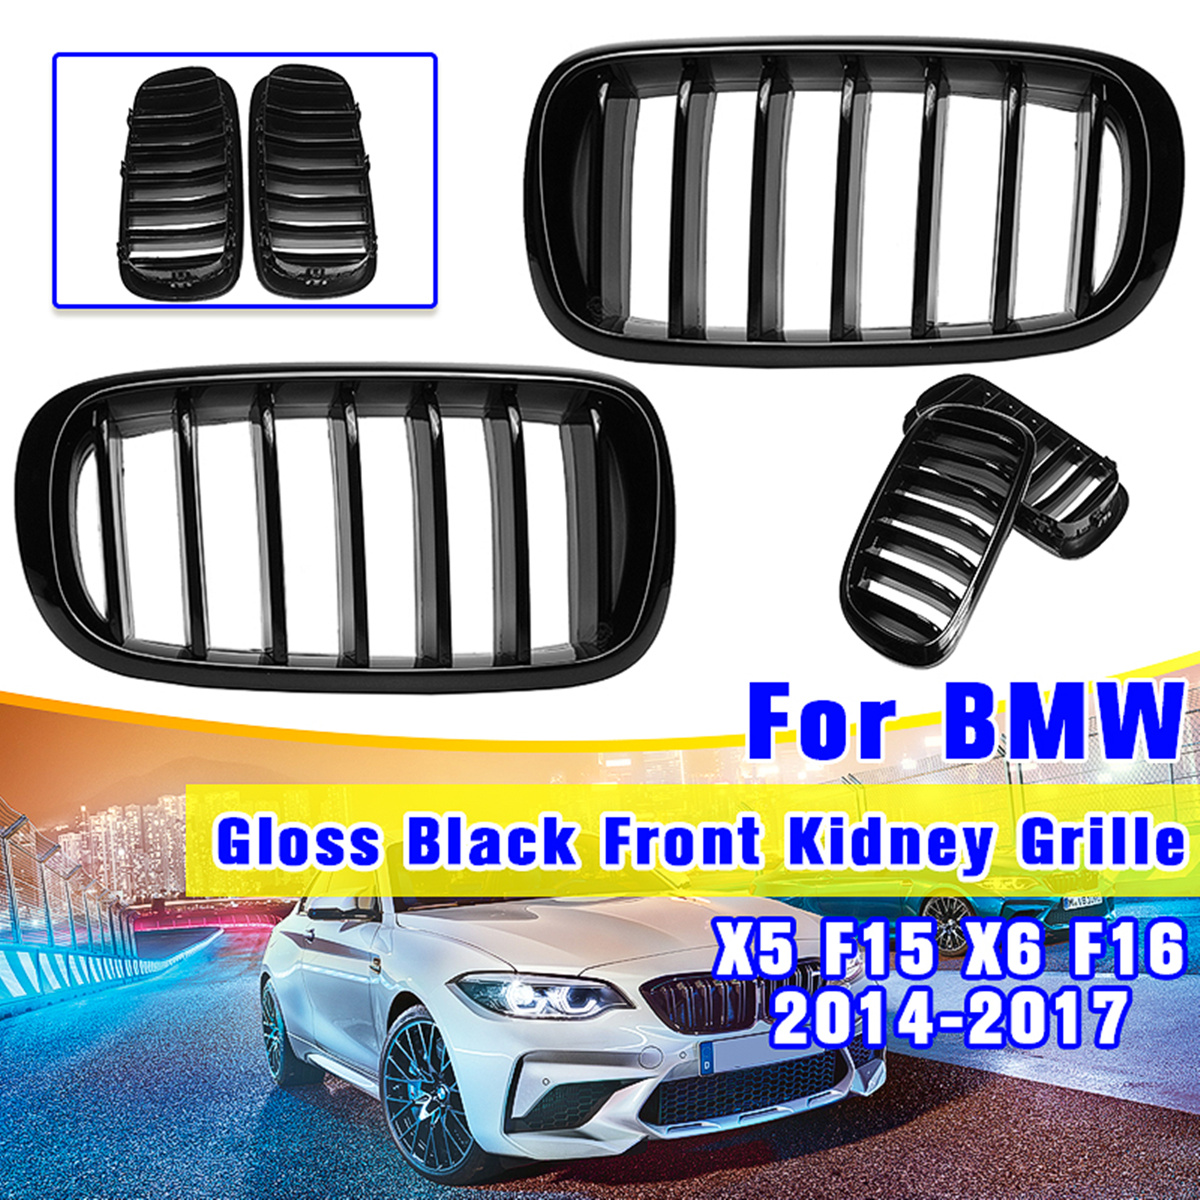 For BMW F15 F16 X5 X6 2014-2018 1 Pair New ABS Replacement Gloss Matte Black 2 Double Slat Line Front Kidney Sport Grill GrilleFor BMW F15 F16 X5 X6 2014-2018 1 Pair New ABS Replacement Gloss Matte Black 2 Double Slat Line Front Kidney Sport Grill Grille